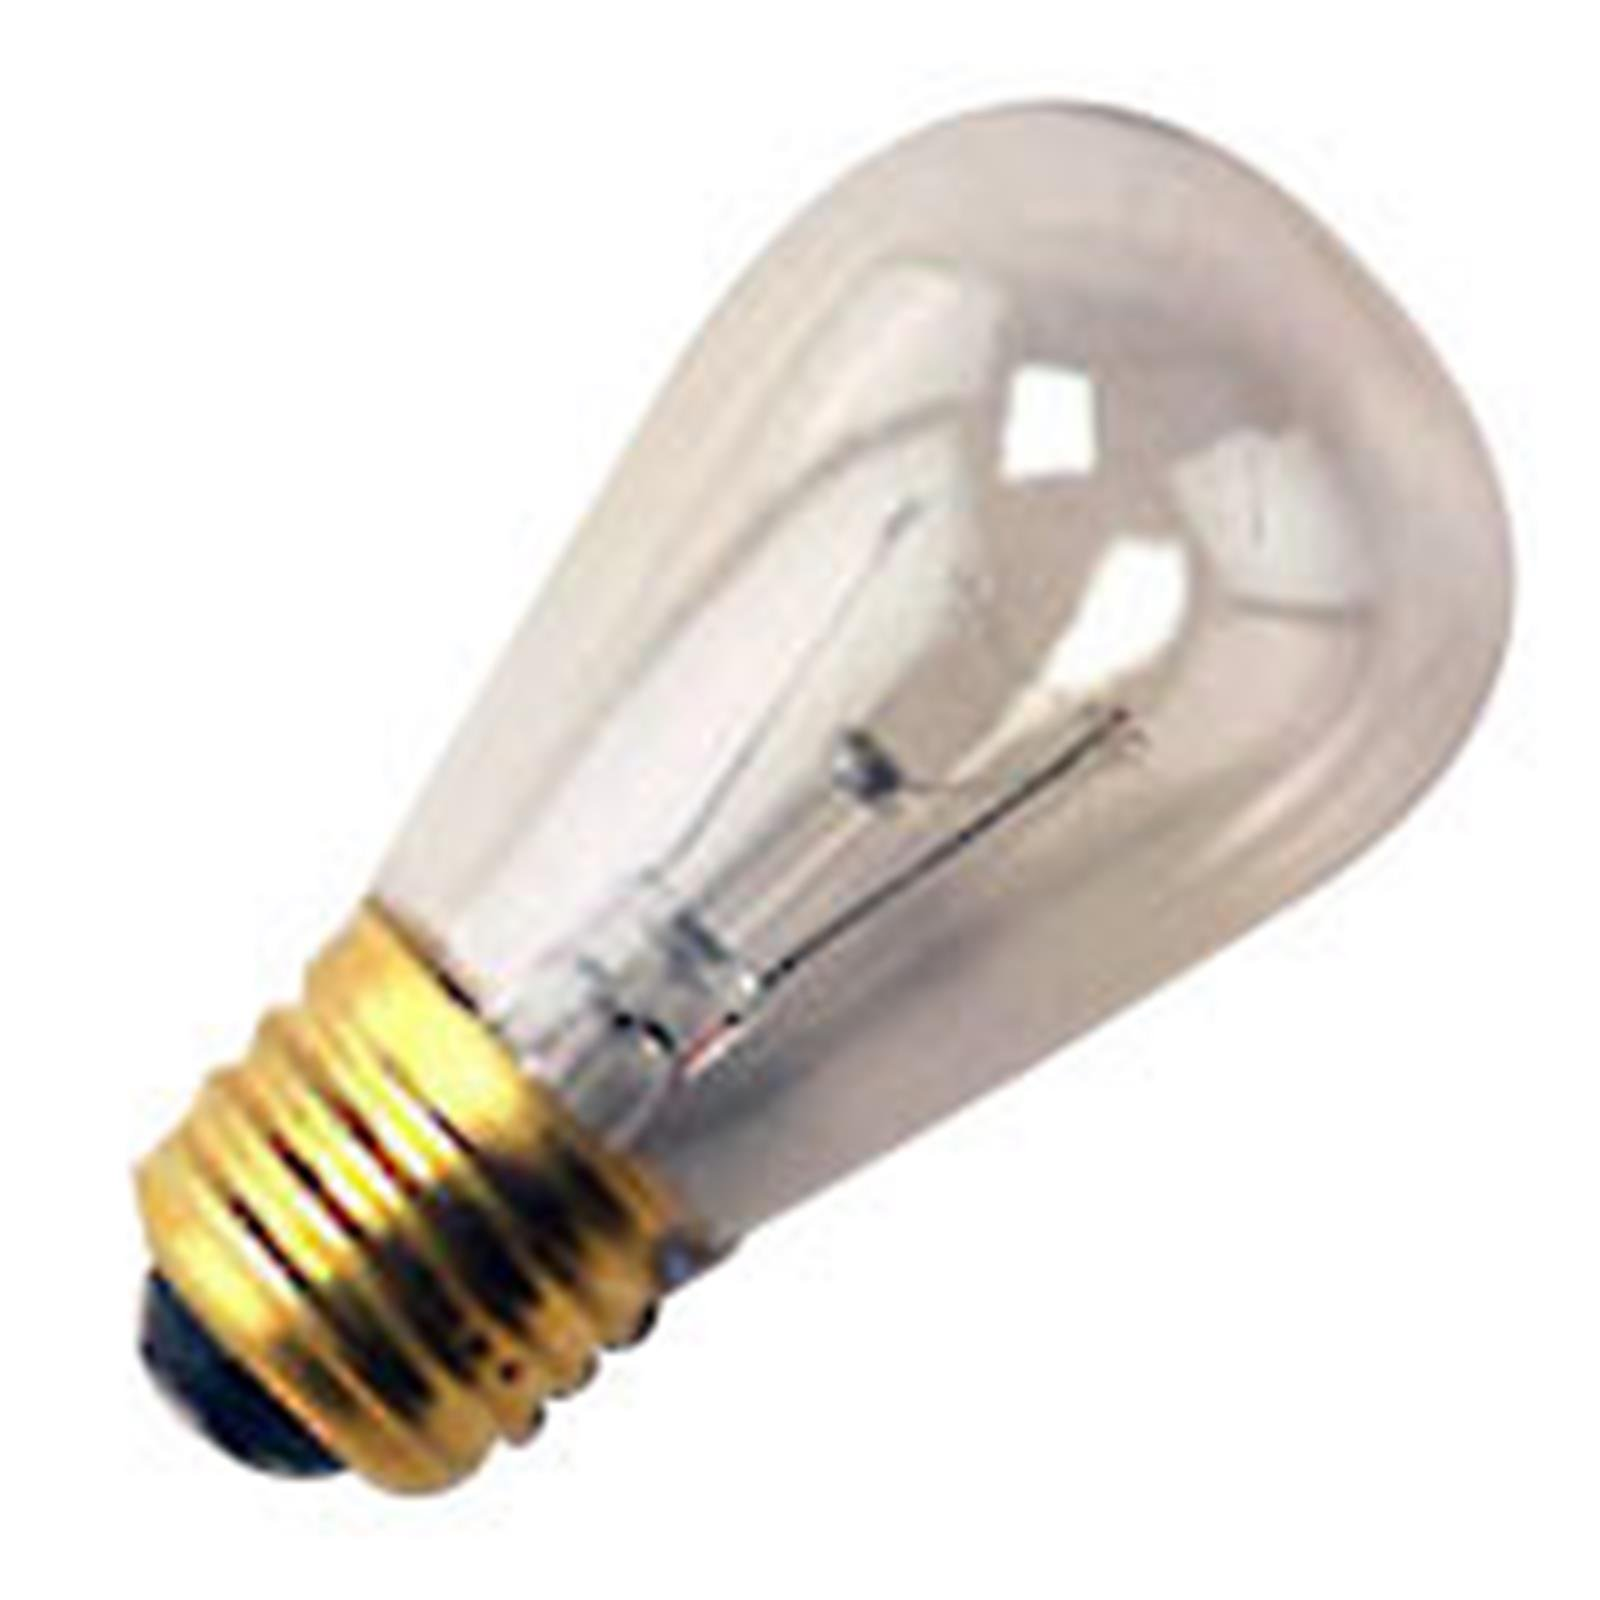 75 Qty. Halco 11W S14 CL 130V HALCO S14CL11 11w 130v Incandescent Clear Lamp Bulb